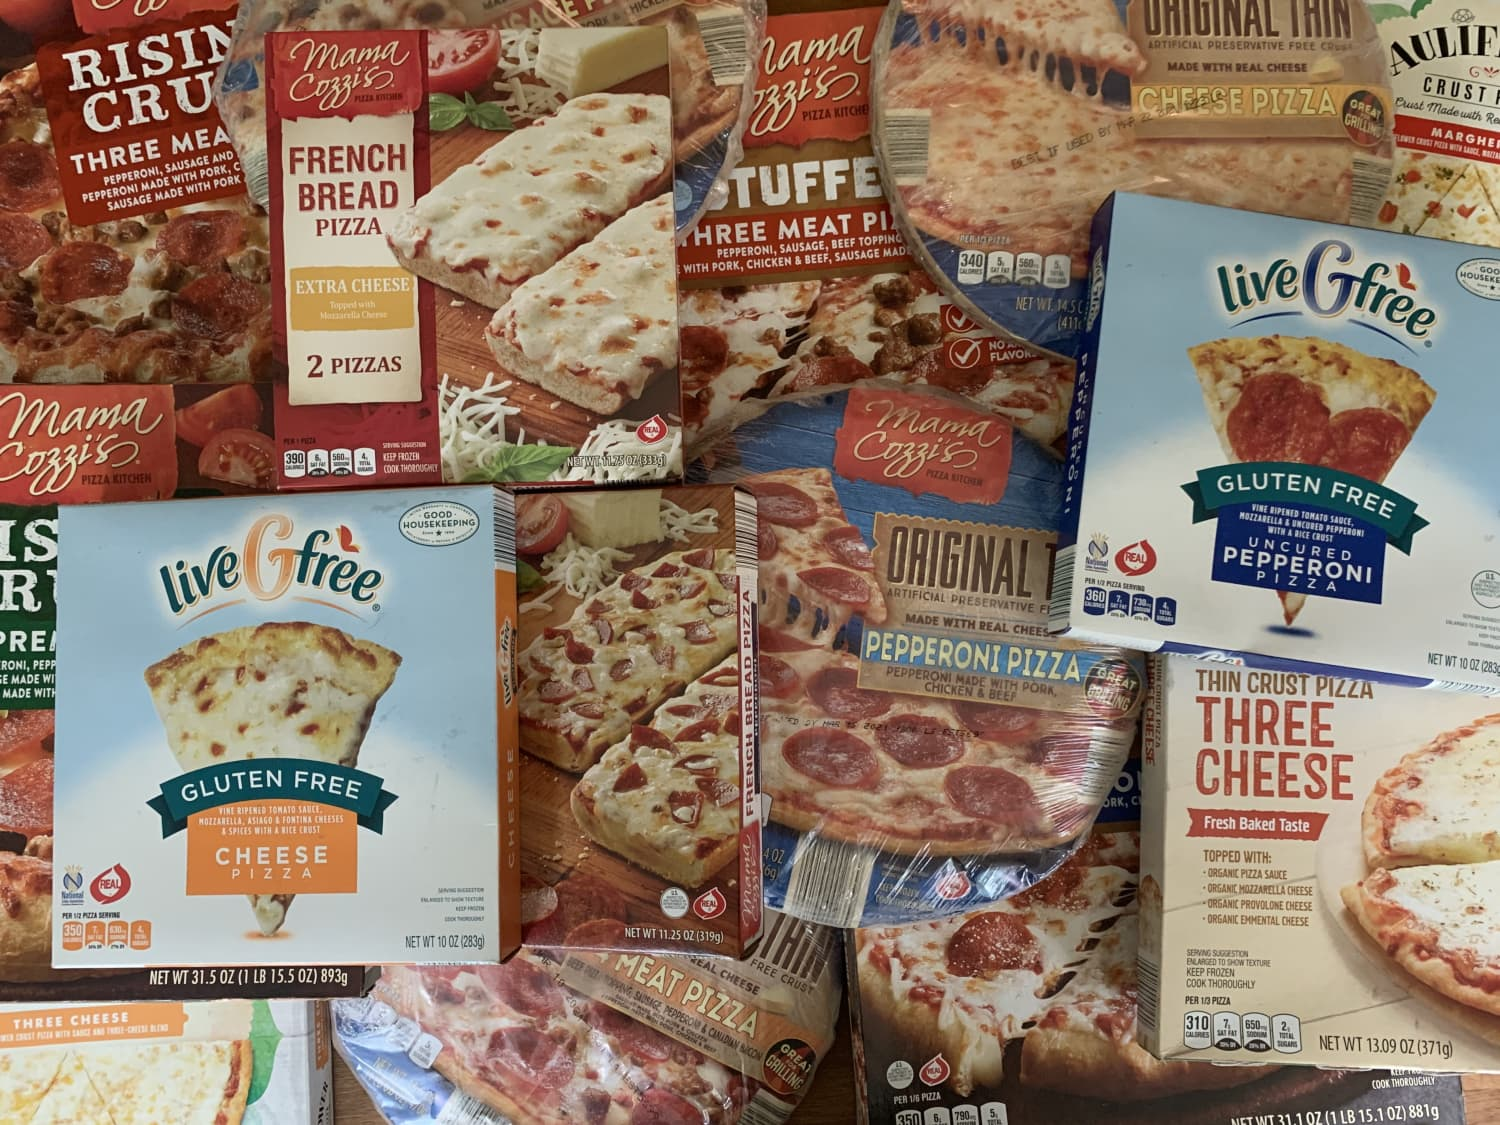 I Tried Every Frozen Pizza at Aldi. These Are the Top 3.